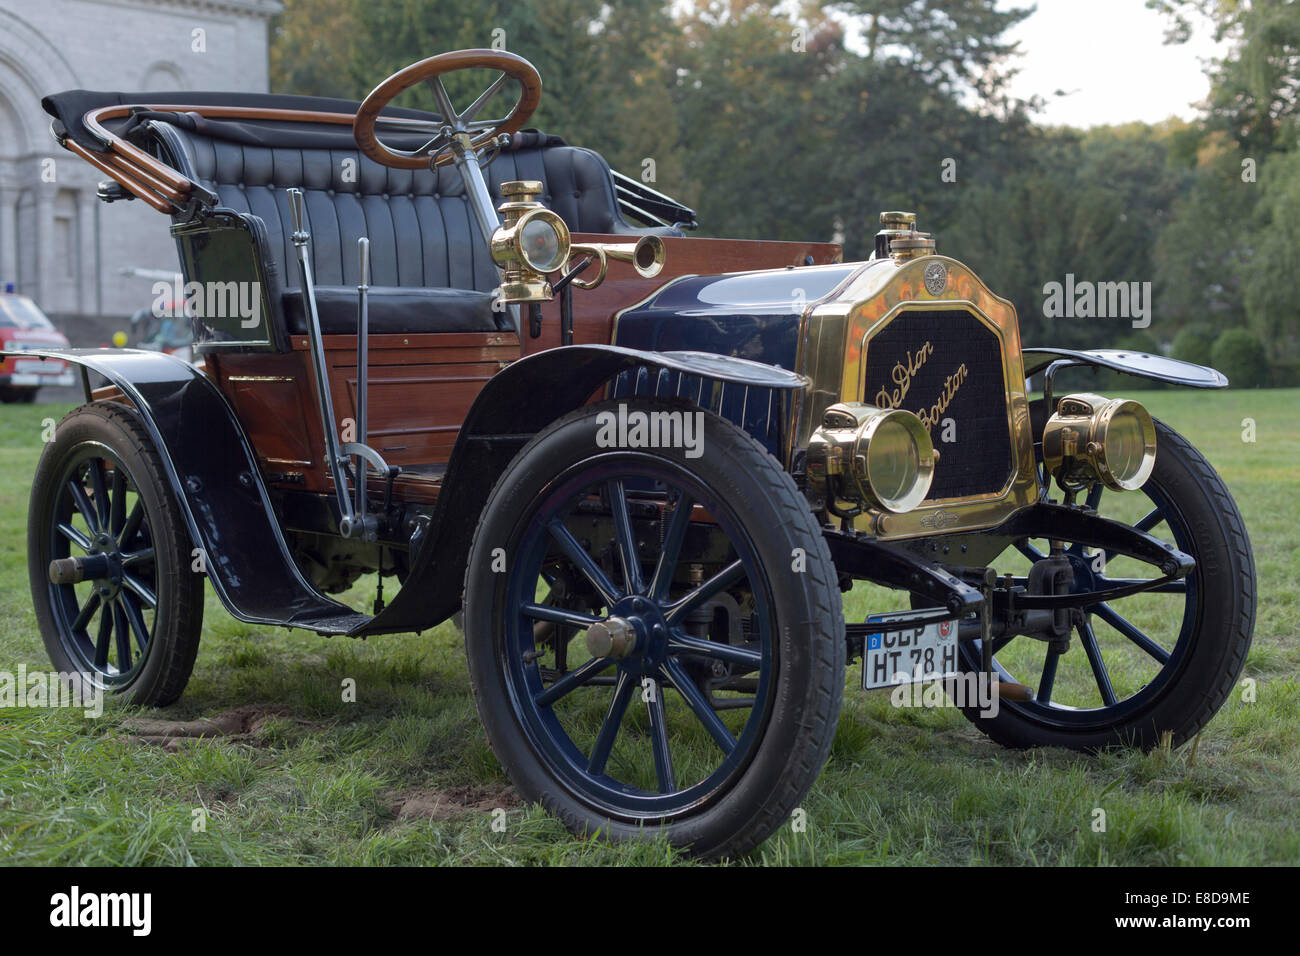 Vintage car, De Dion-Bouton, agricultural machinery exhibition, Bückeburg, Lower Saxony, Germany - Stock Image